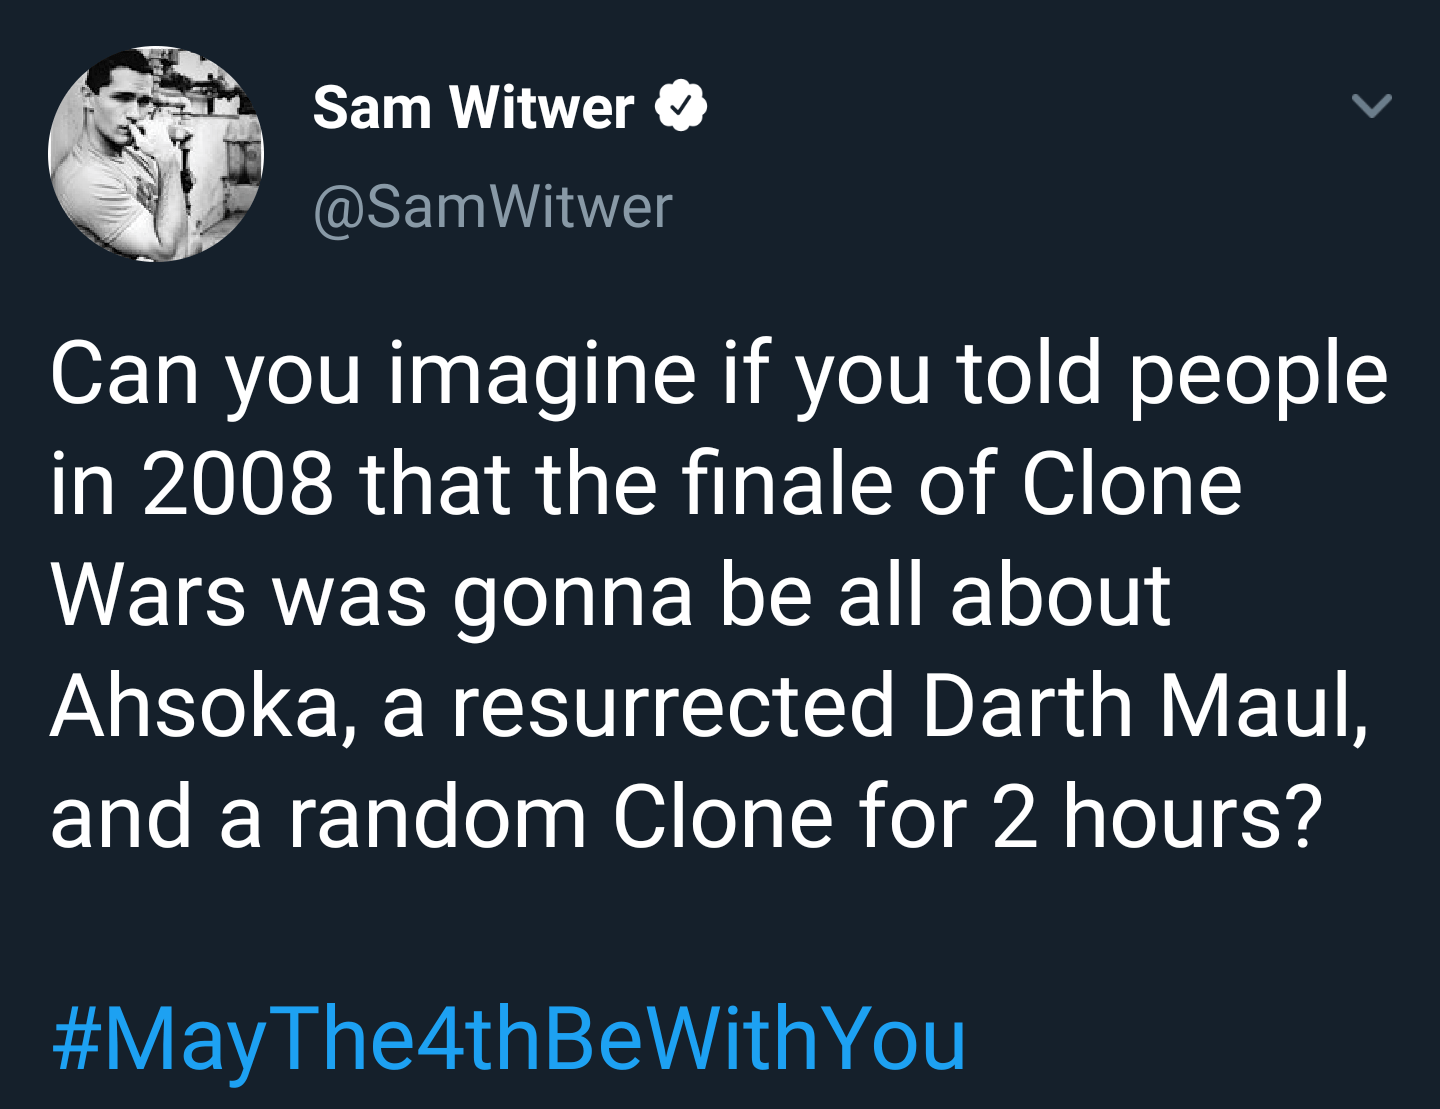 Sam Witwer remarks on how far The Clone Wars has come in the past 12 years